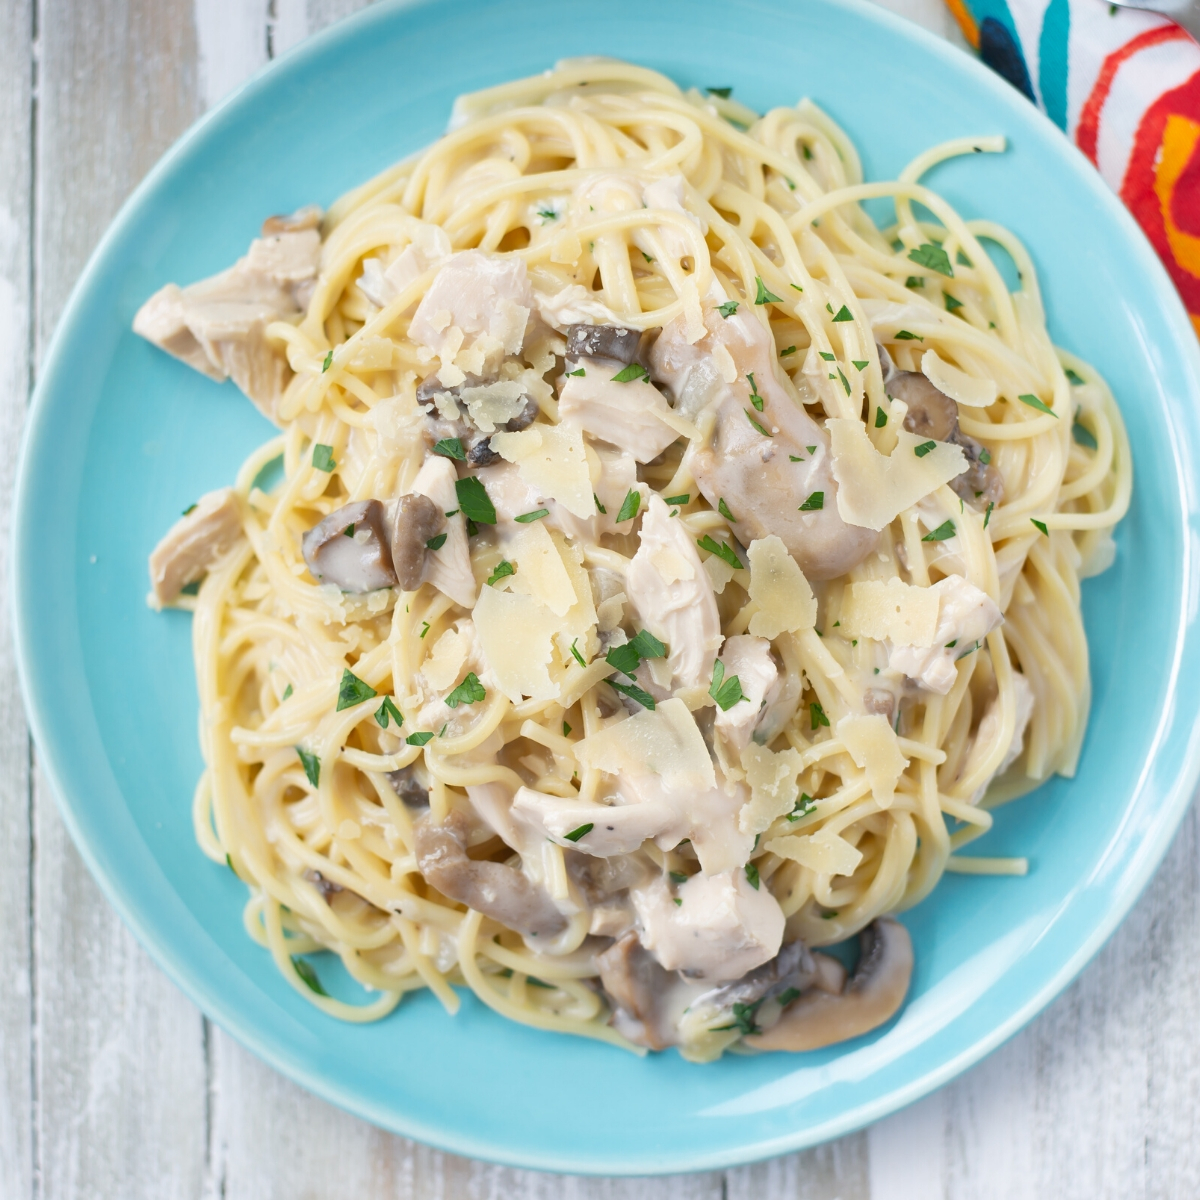 A blue plate with a serving of Crock Pot Chicken Tetrazzini